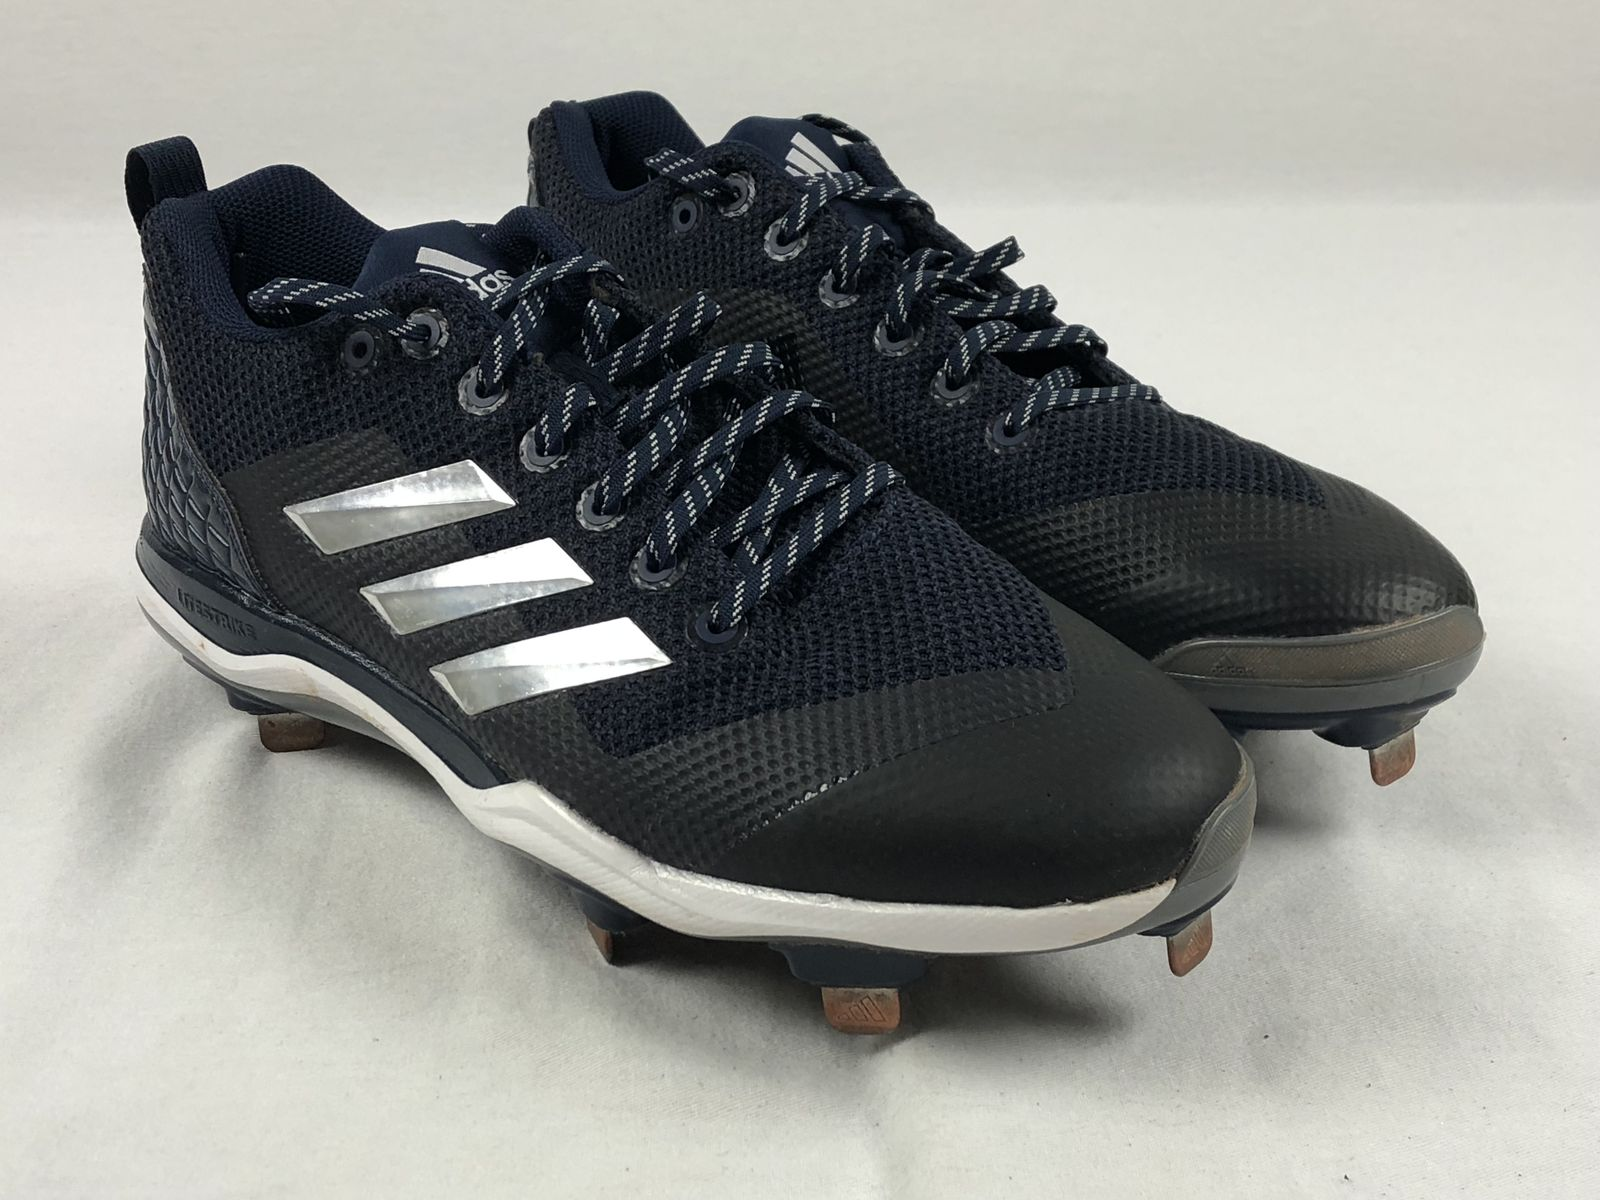 0dccec059b8 Details about adidas Poweralley 5 - Blue Cleats (Men s 12) - Used